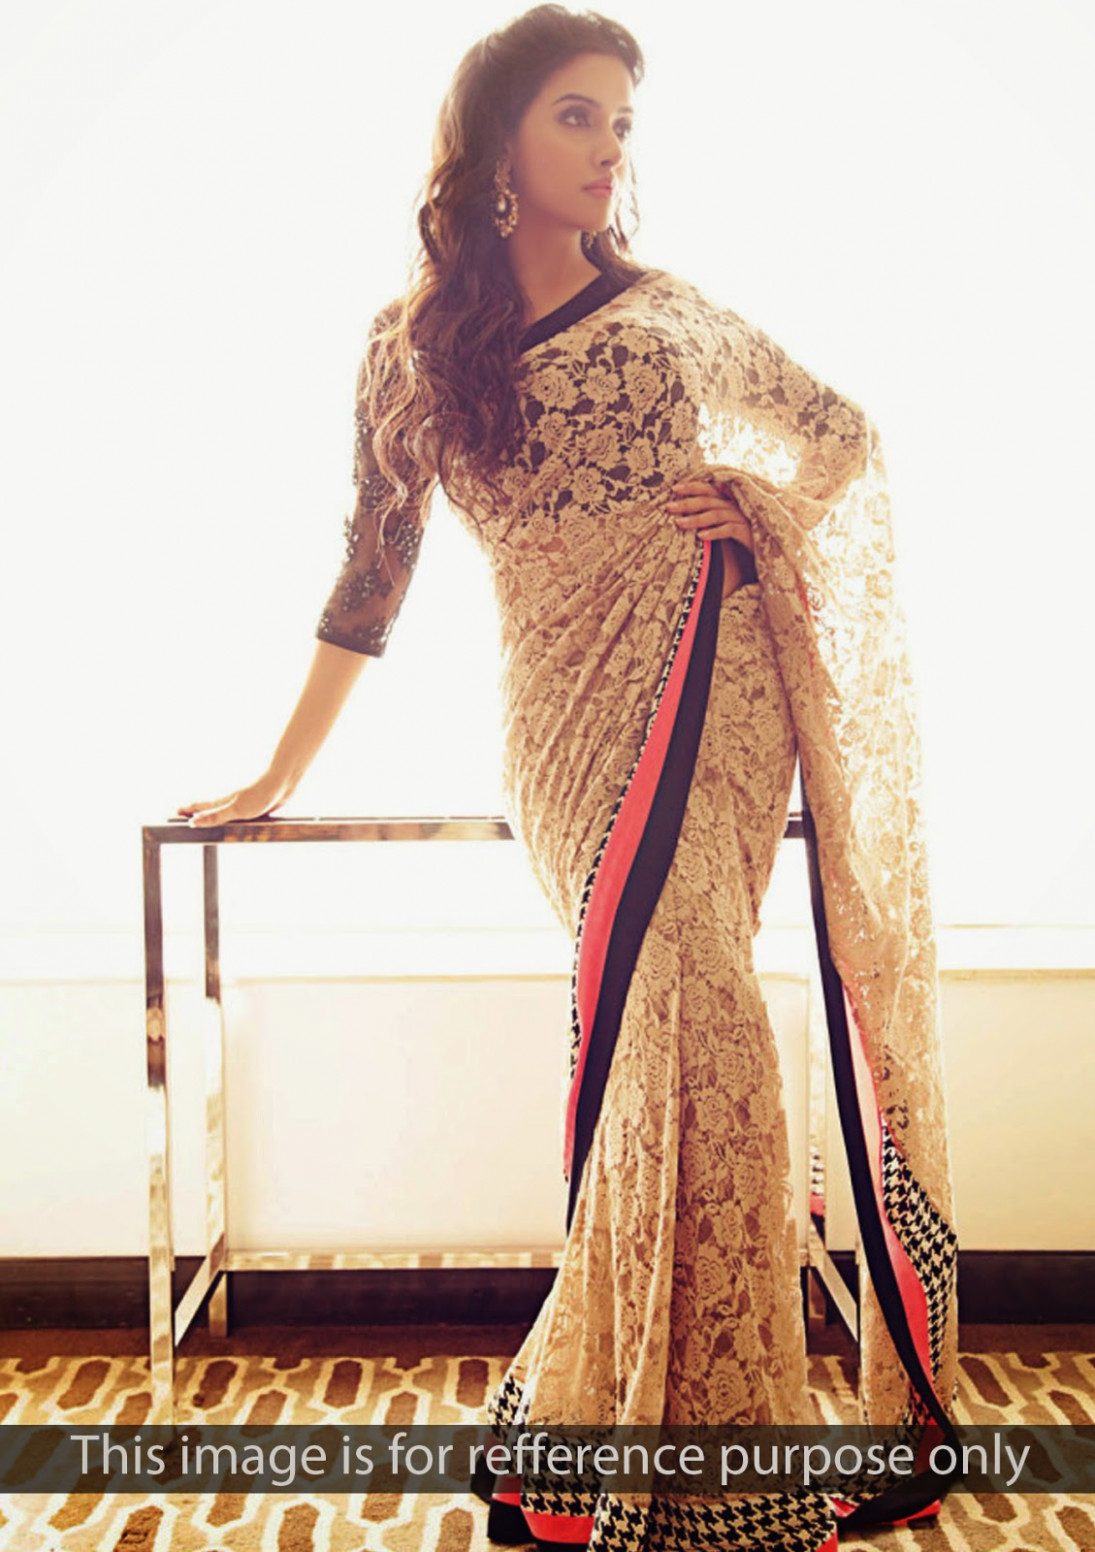 Chikankari Sarees - An ode to Lucknow's tradition